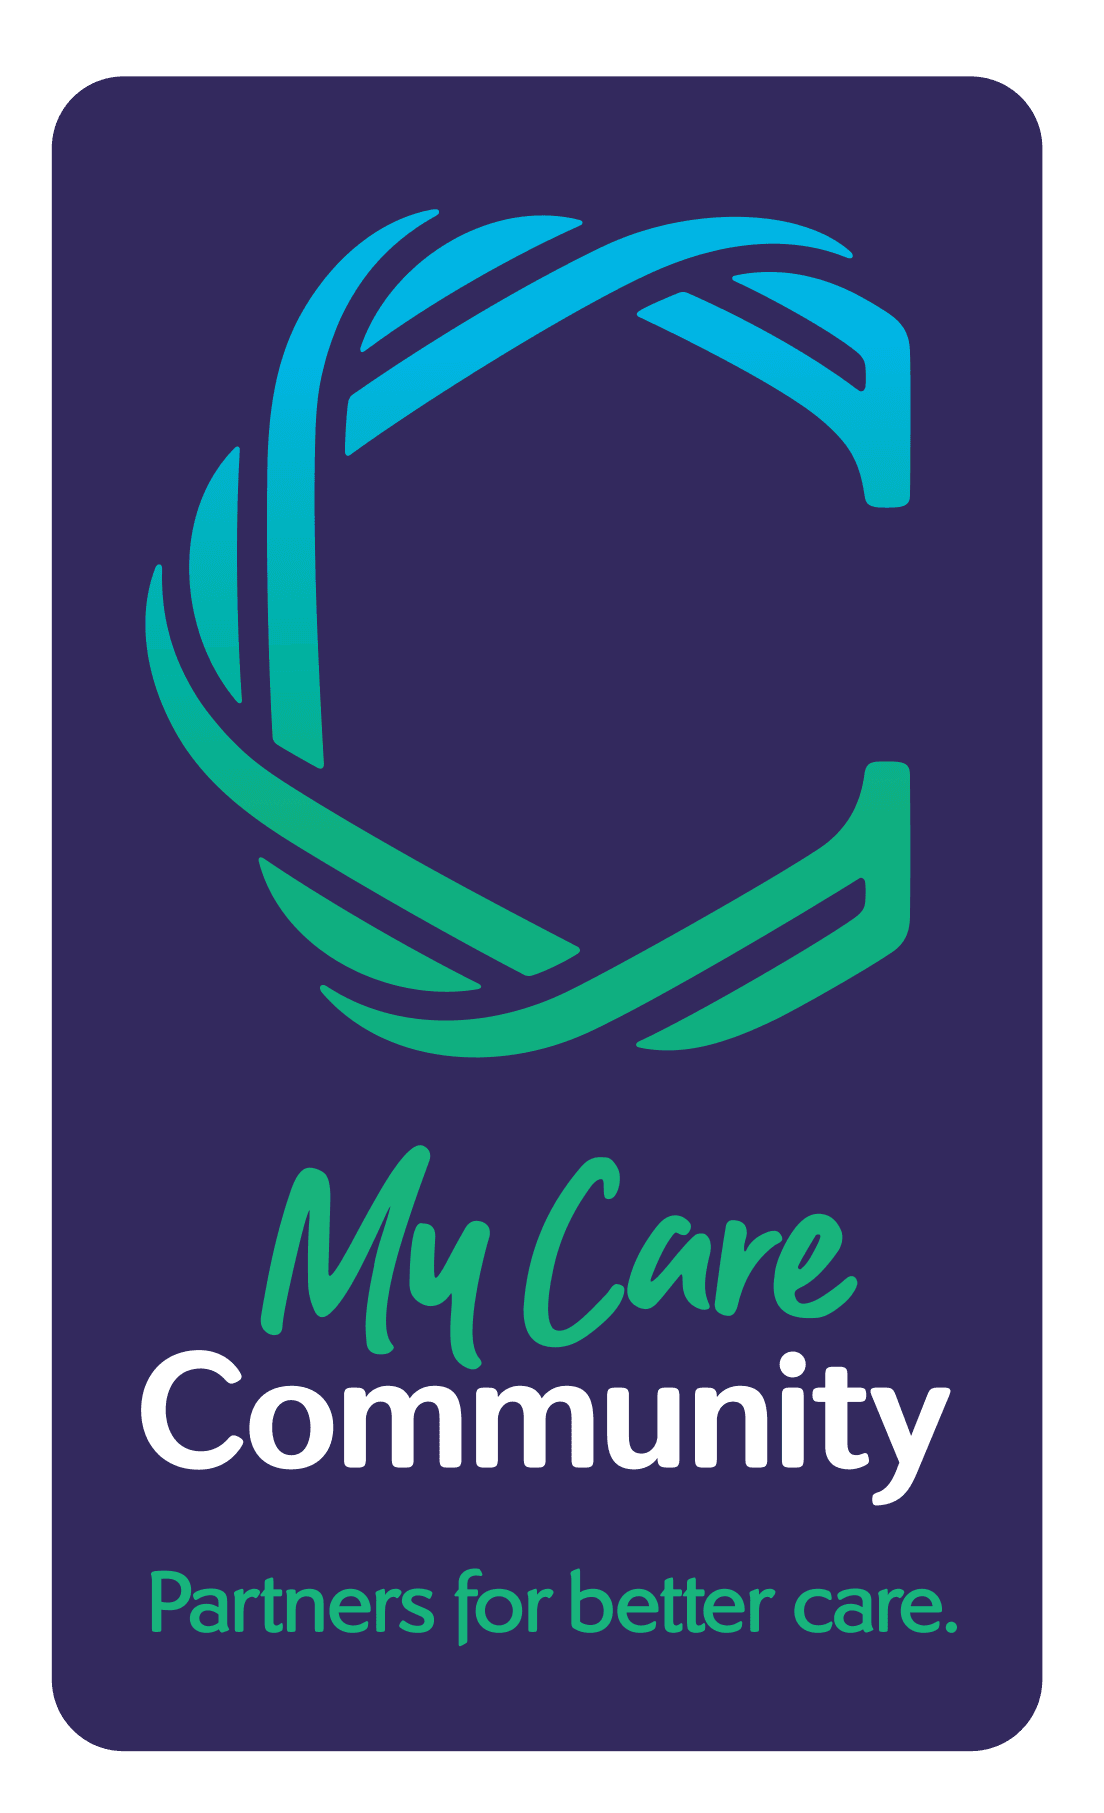 My Care Community logo, Partners for better care.